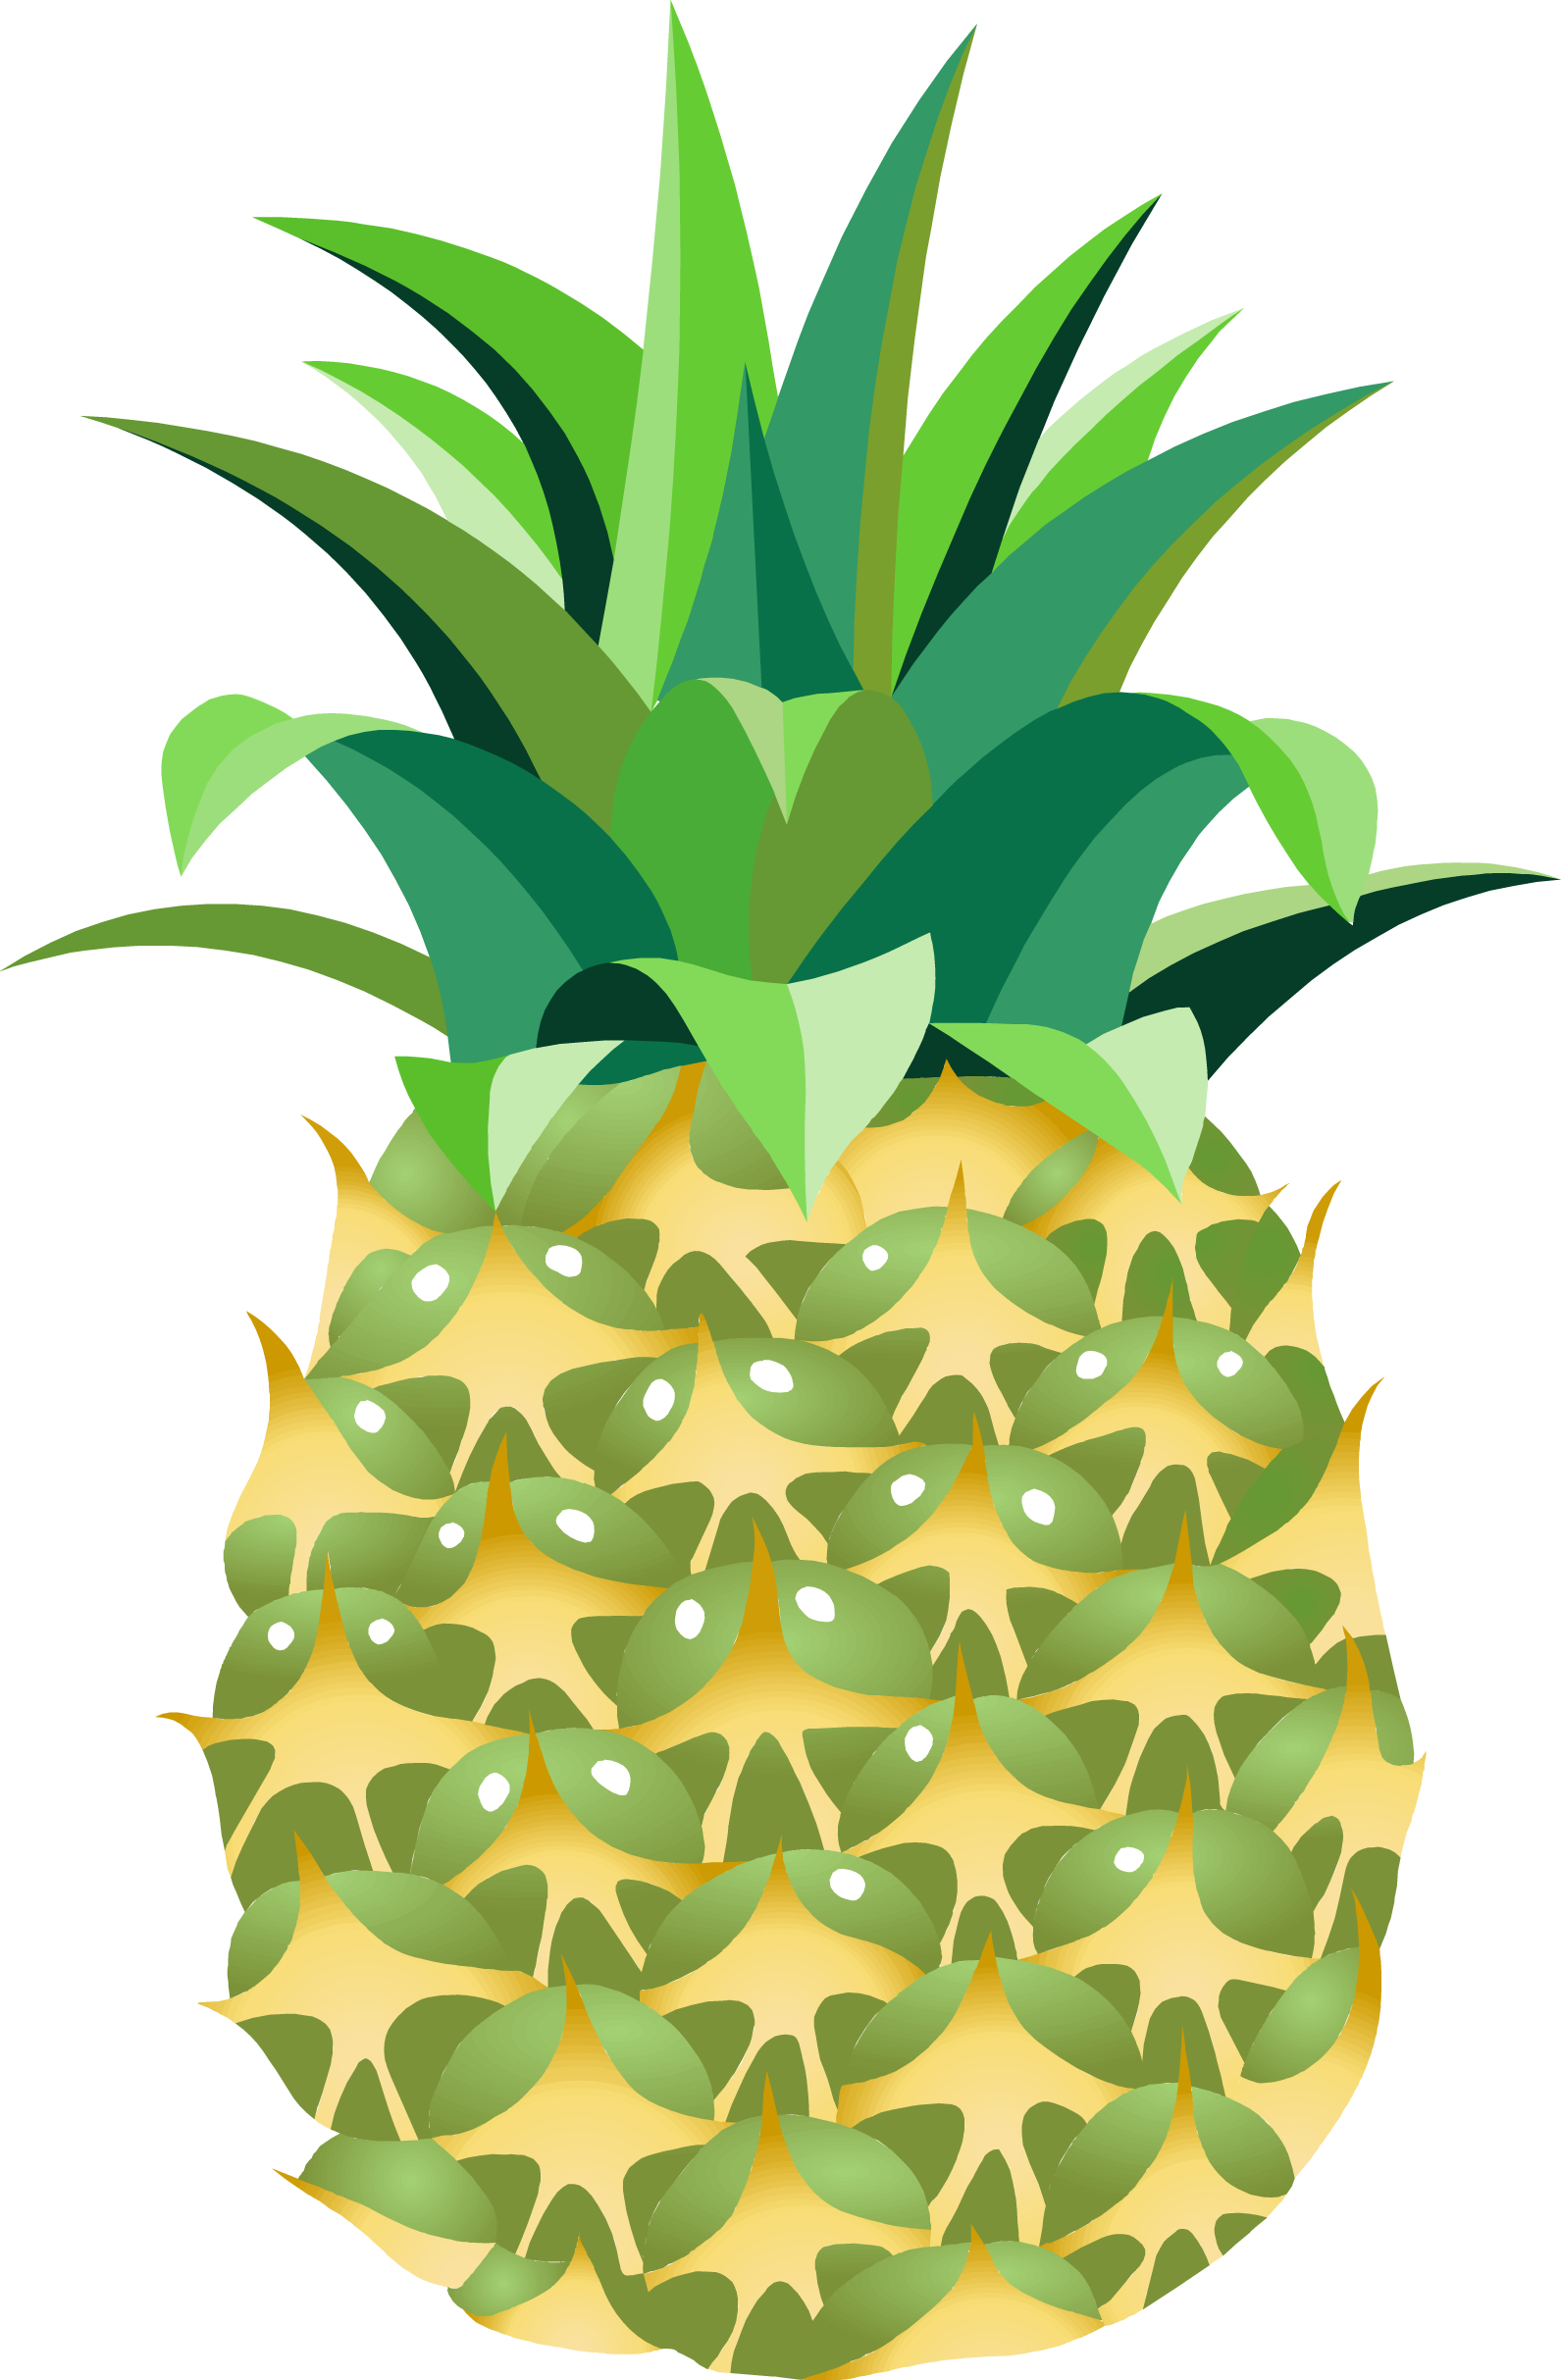 Pineapple flower clipart clip transparent download Pineapple Fourteen | Isolated Stock Photo by noBACKS.com clip transparent download